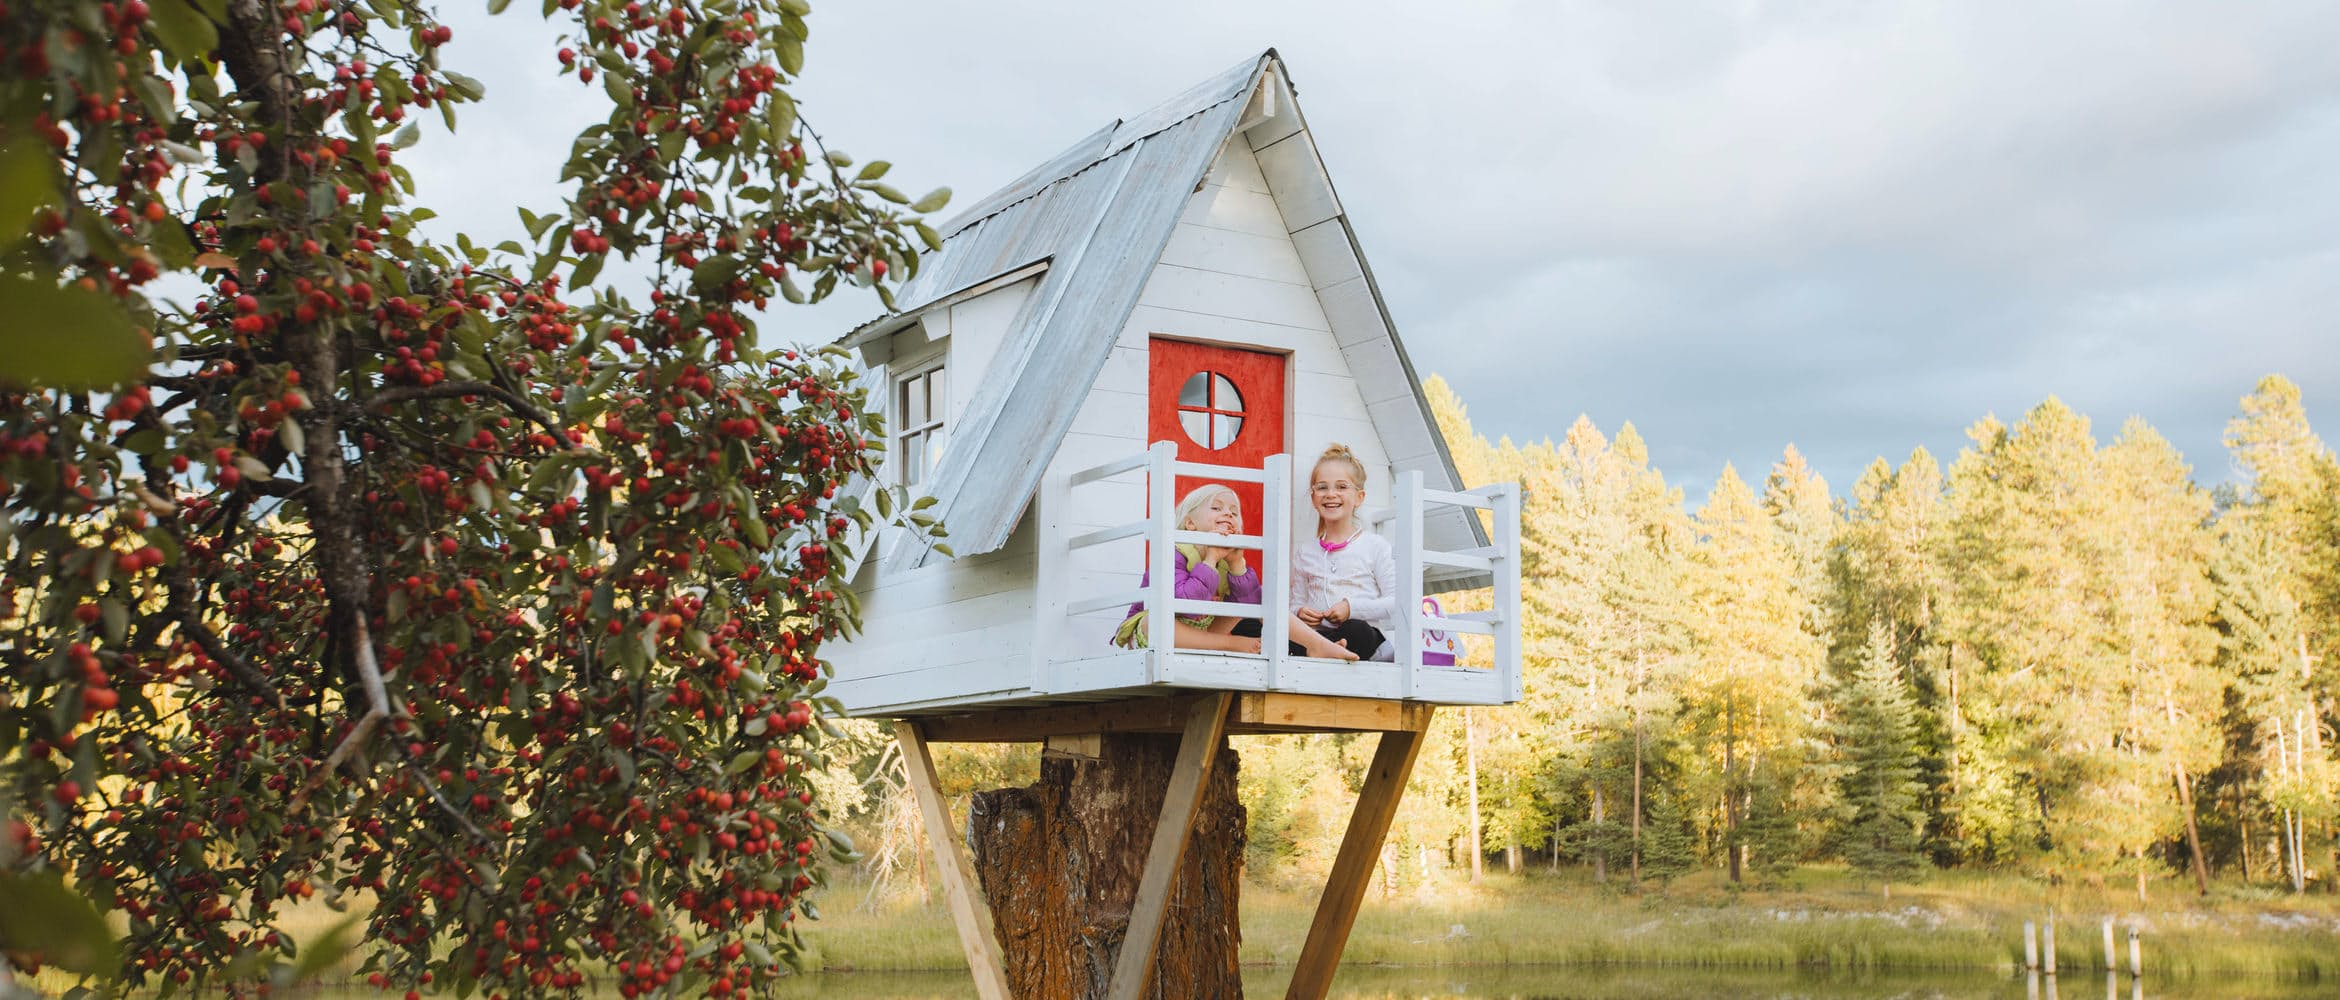 Featured 2x build your kid that treehouse.jpg?ixlib=rails 2.1